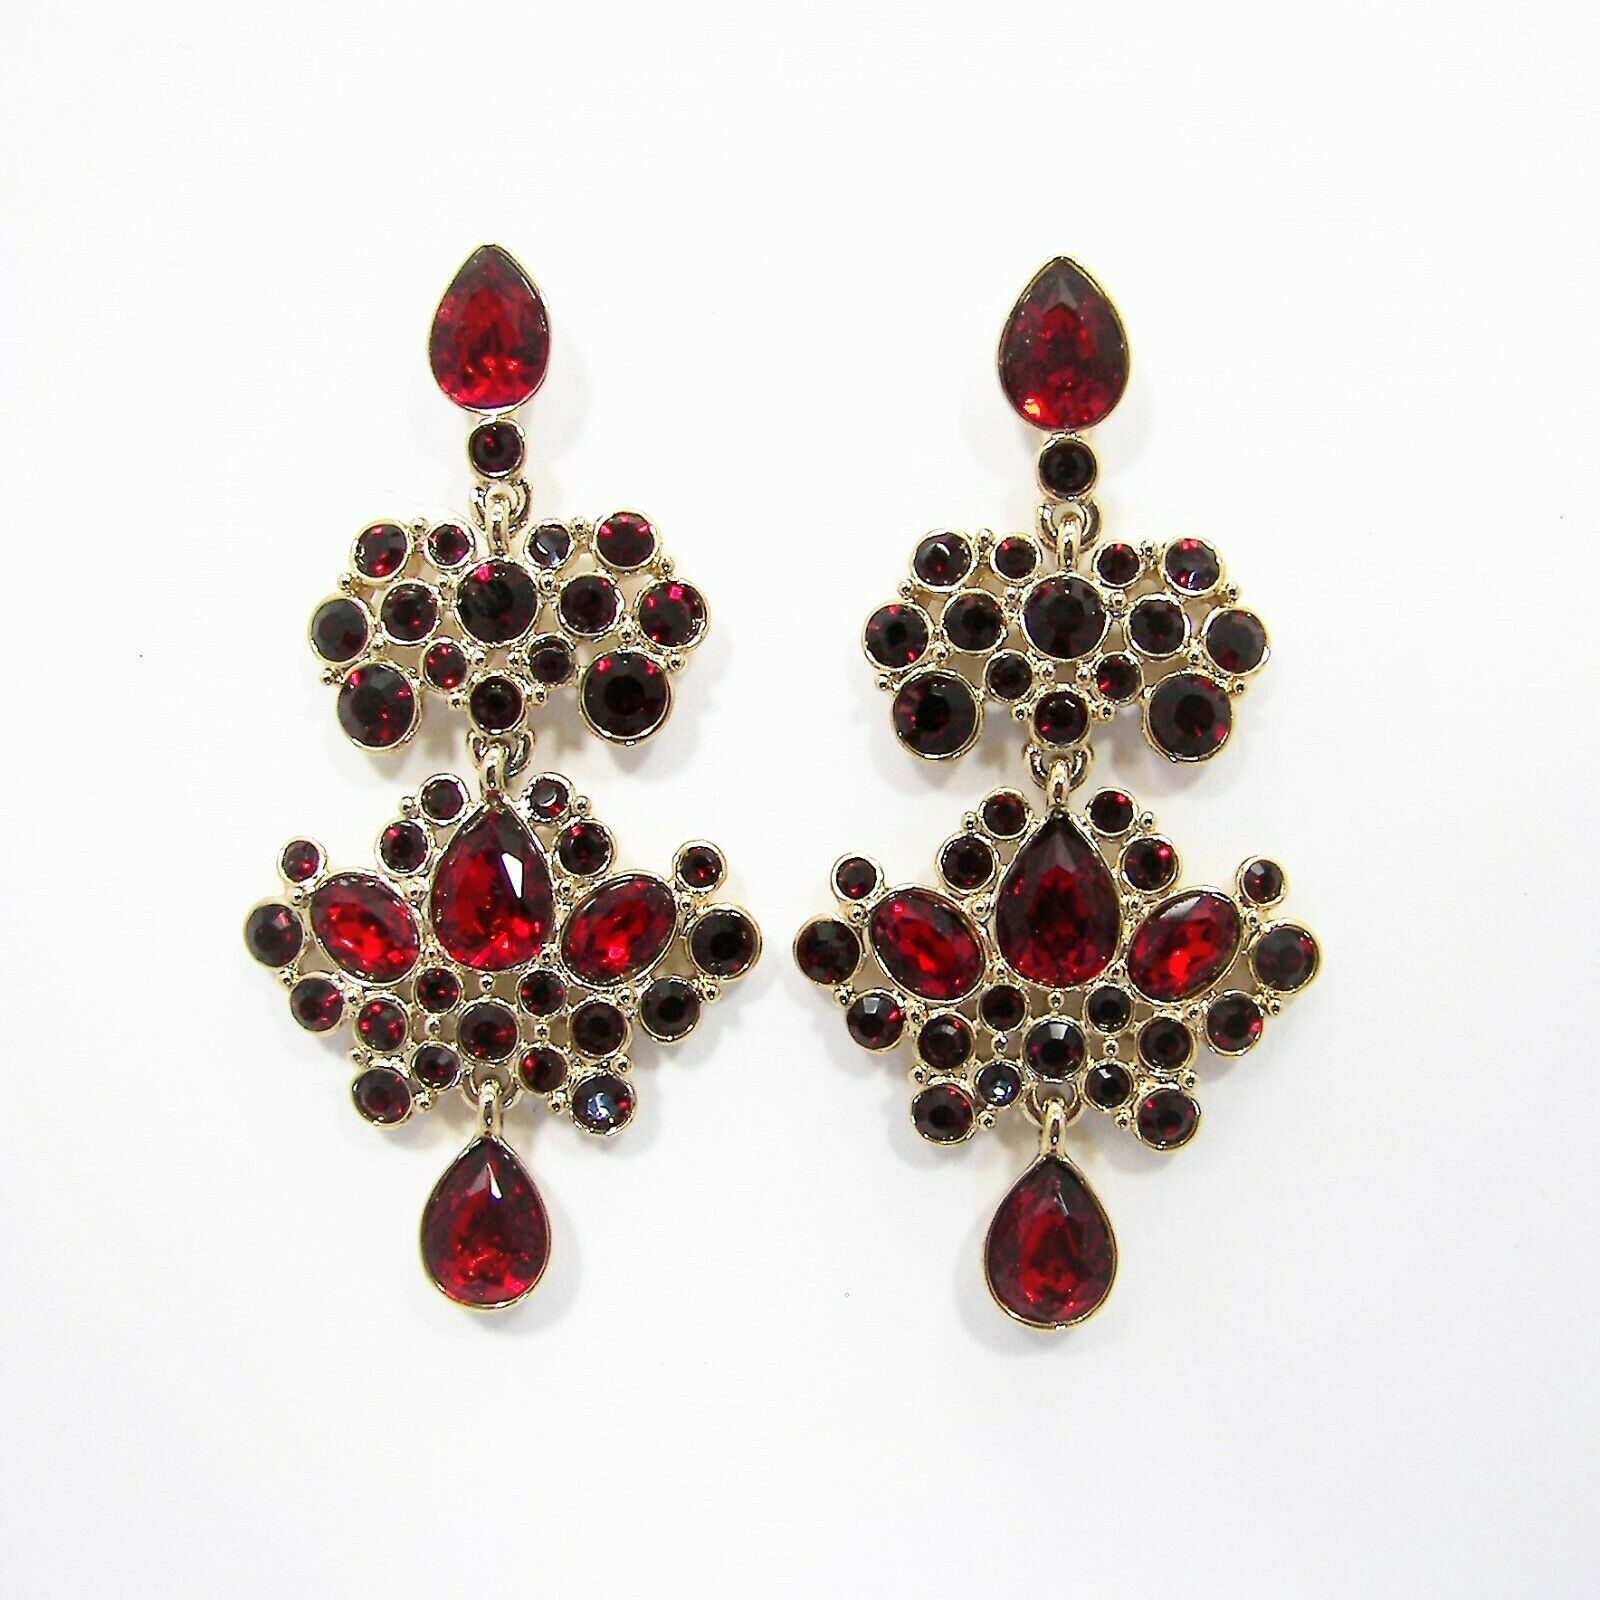 Givenchy Red Multi Crystal Chandelier Earrings gold Tone Metal MSRP  88